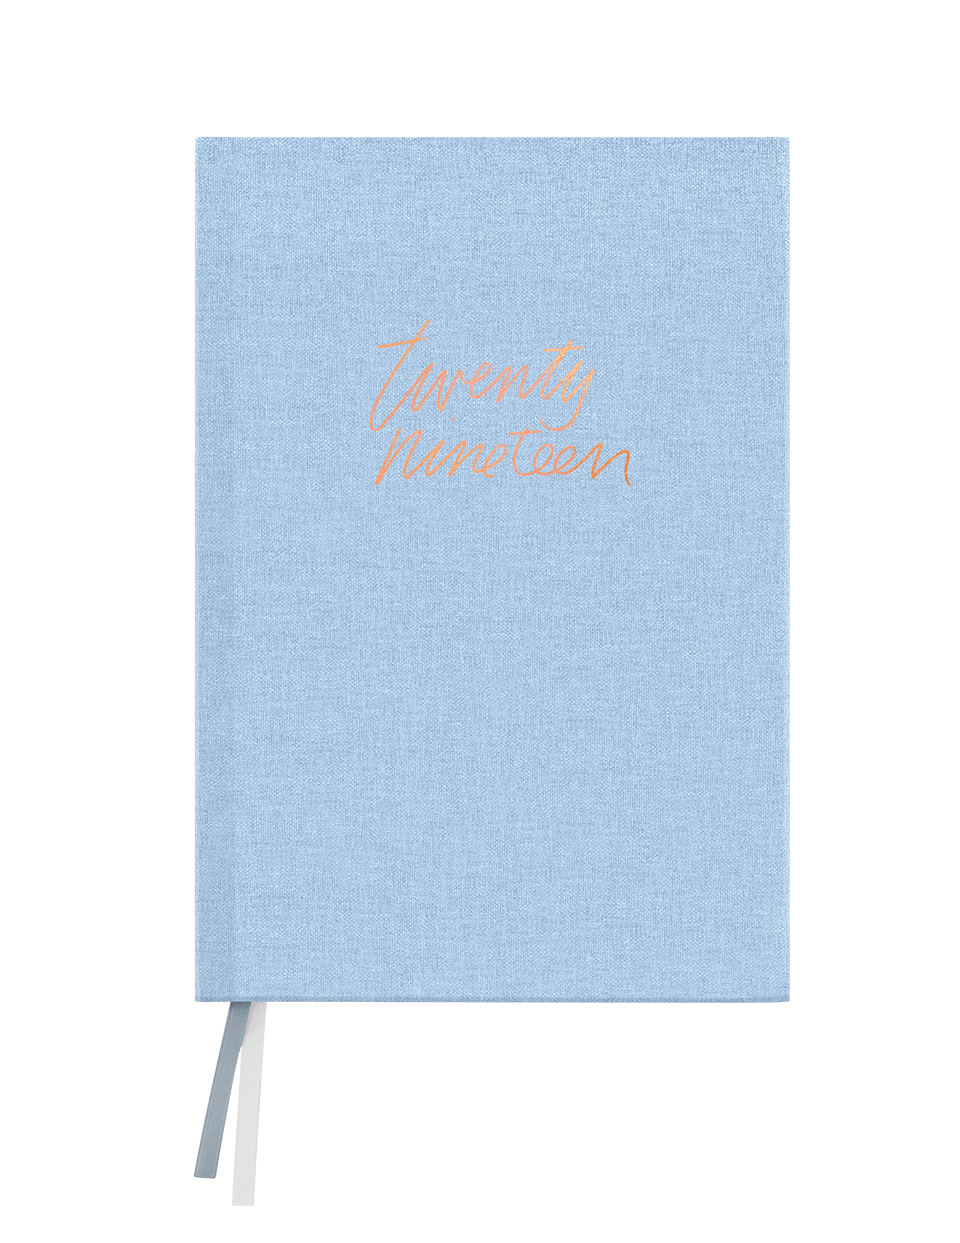 Chambray Linen Floral Agenda 2019